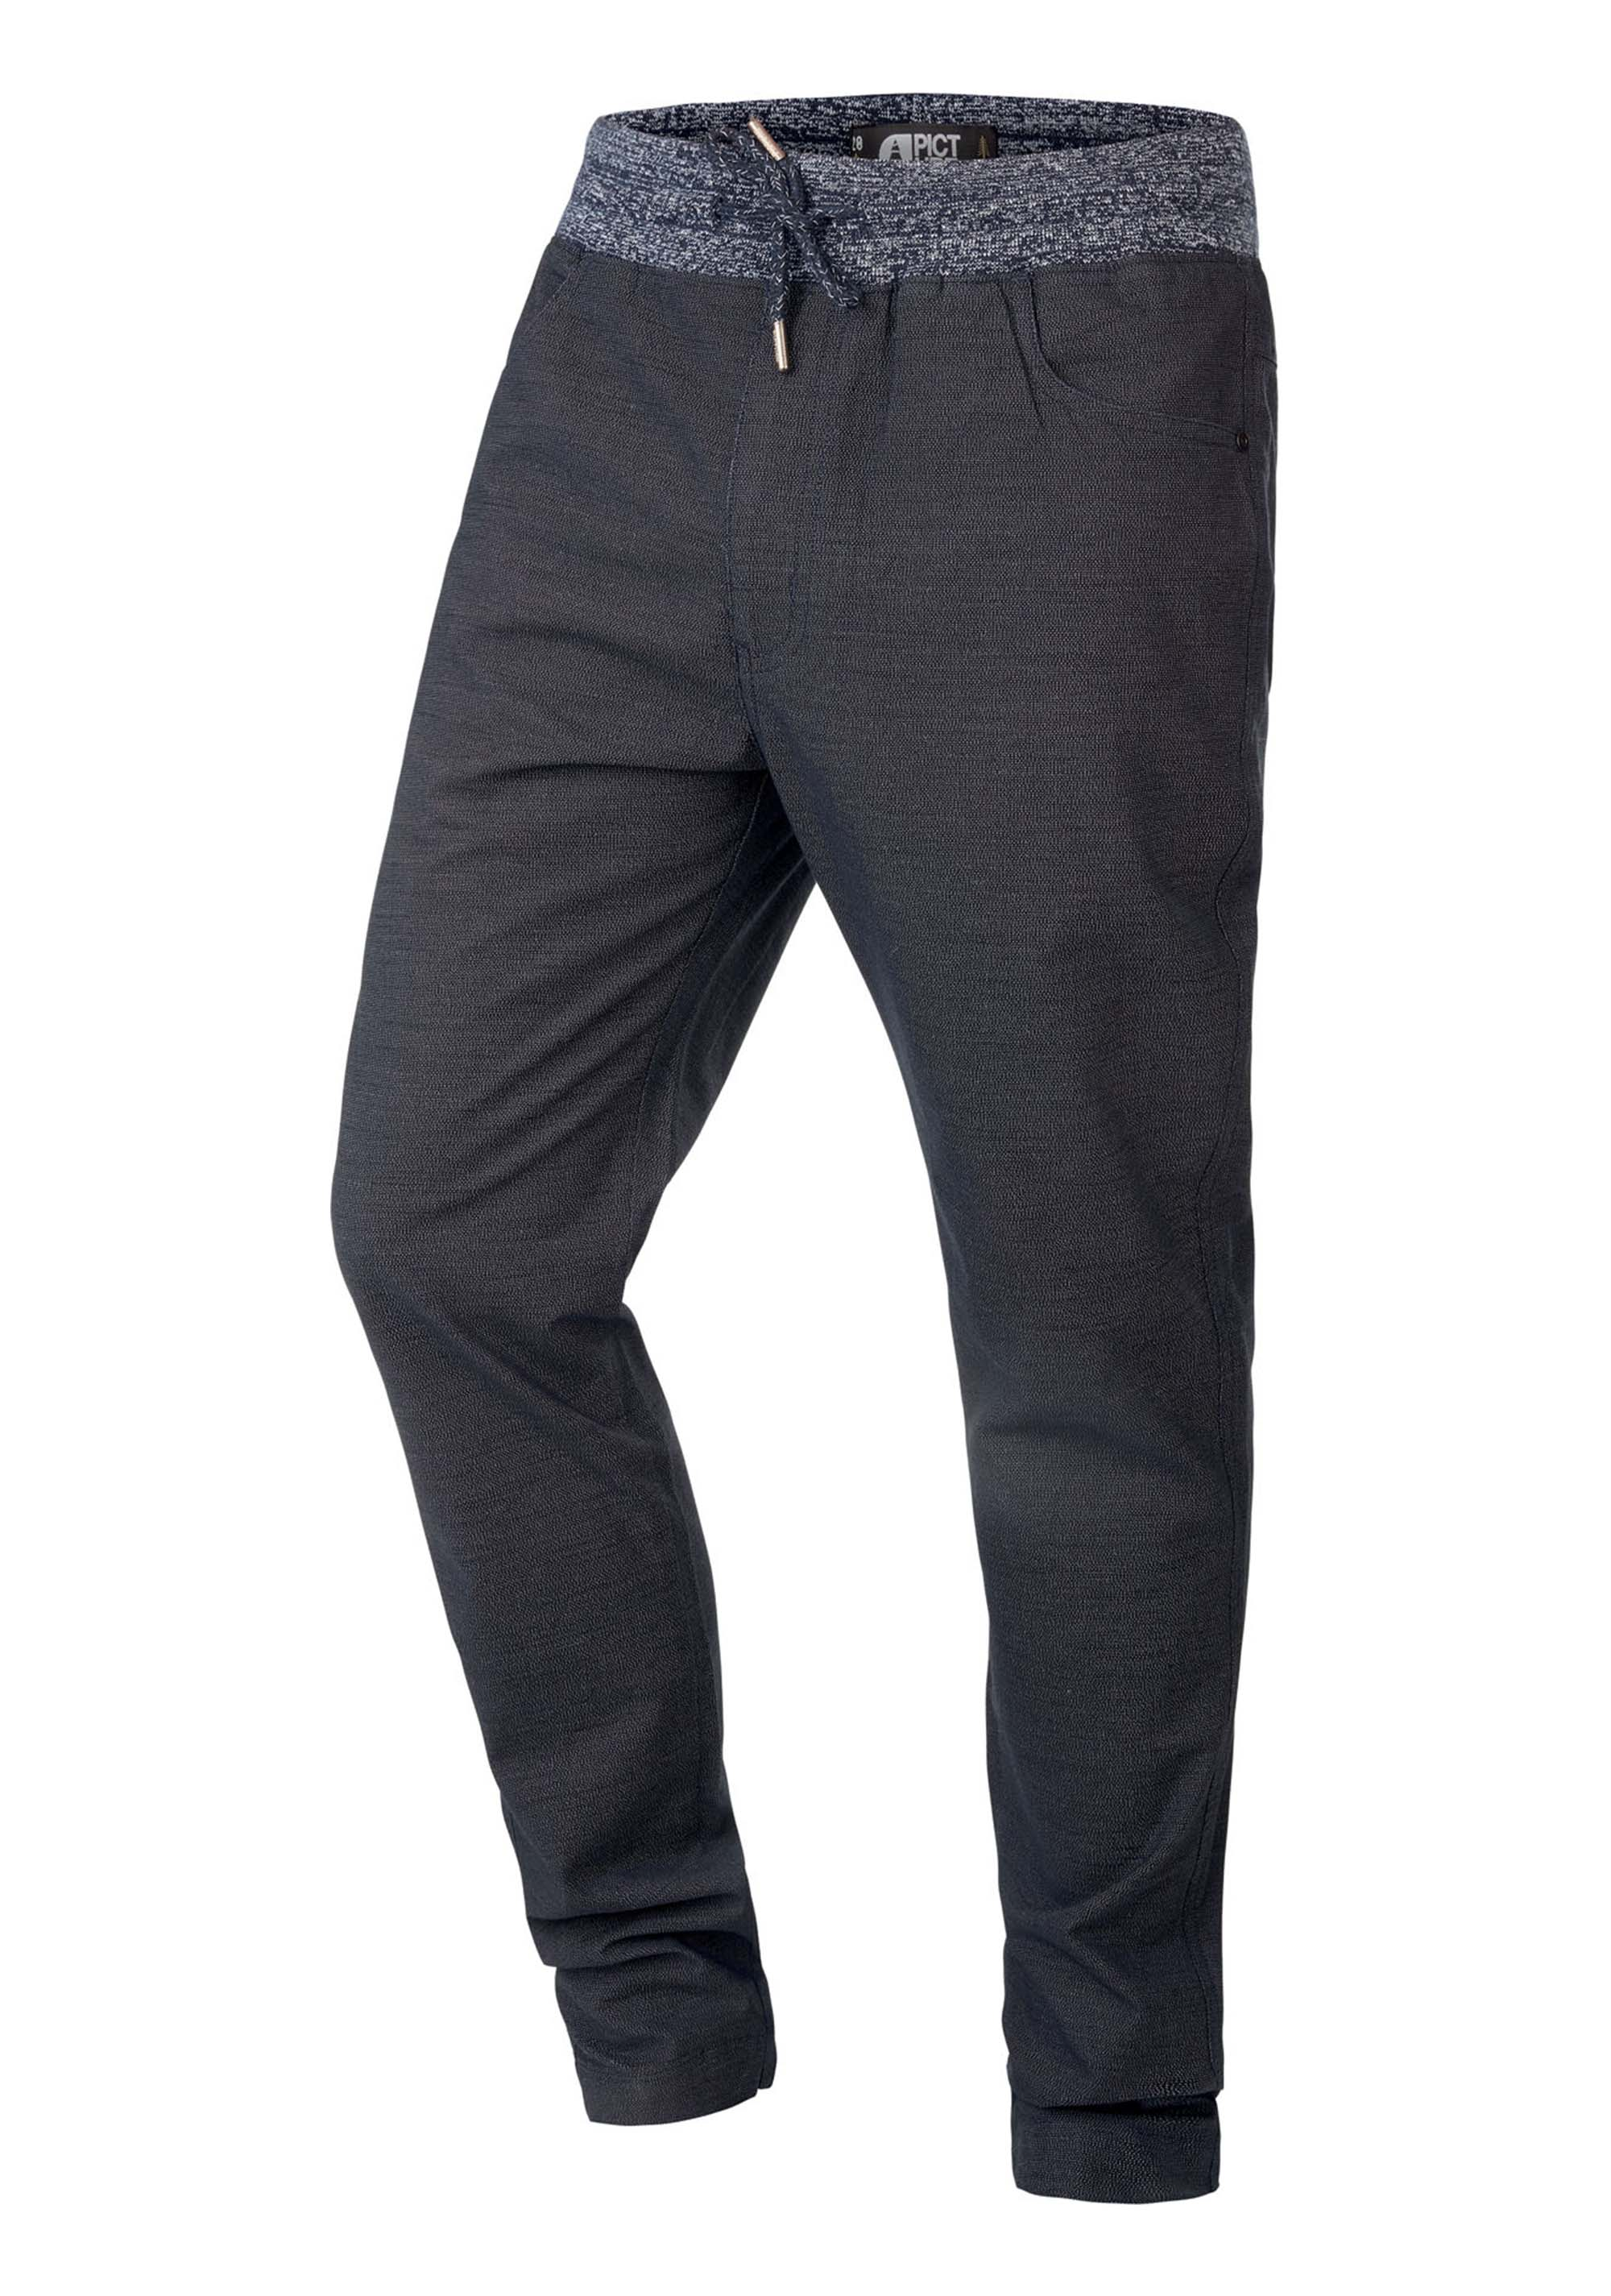 Chino CRUSY PANT DARK BLUE picture organic clothing